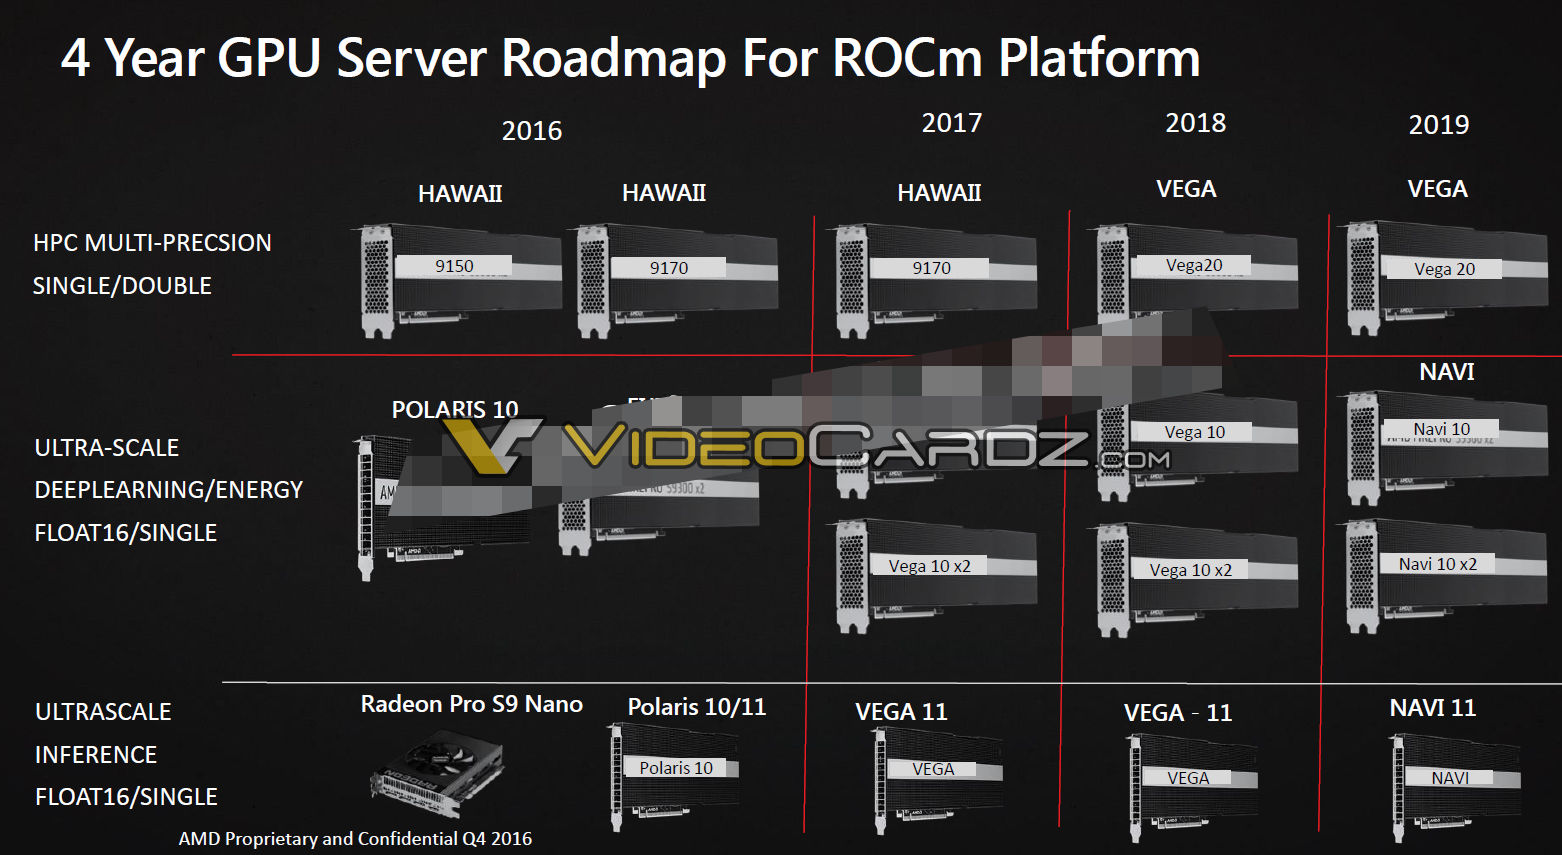 AMD Vega 10 and Vega 20 Internal Slides Leak Out - 1/16th Double Precision Performance. 1500MHz+ Clock Rate. Vega 10 X2 Planned For 2H 2017